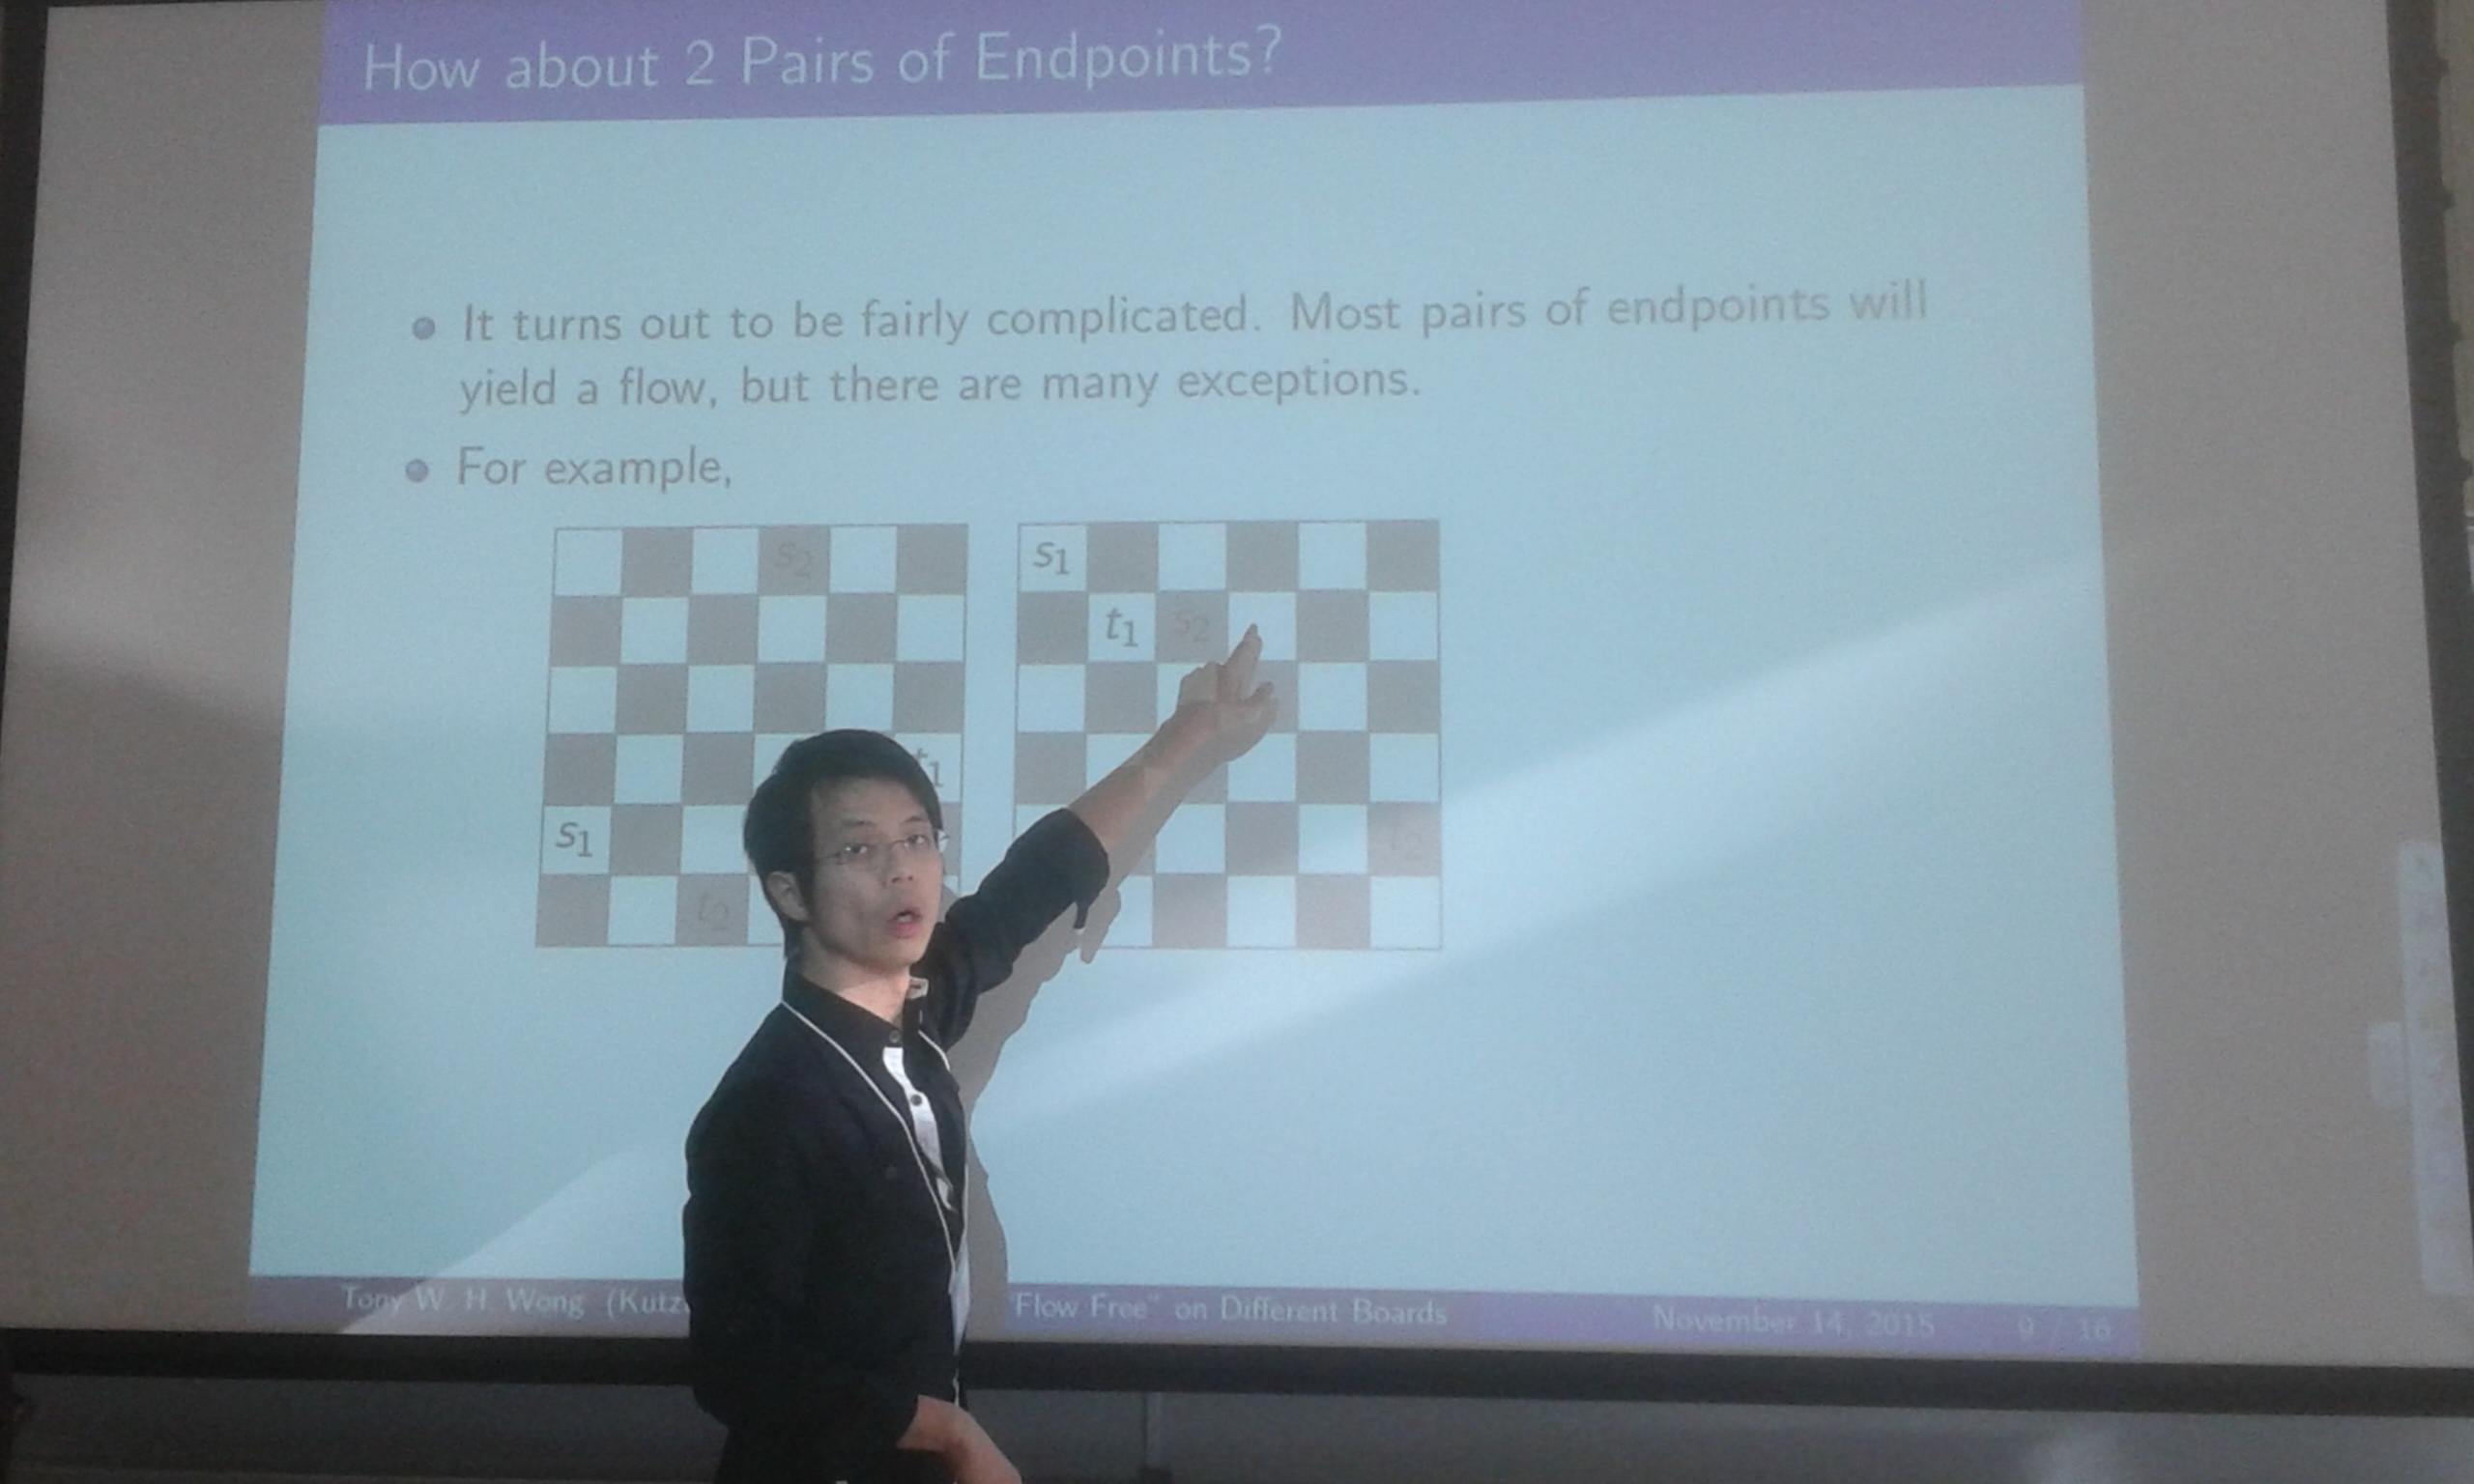 Dr. Wong presenting at a conference